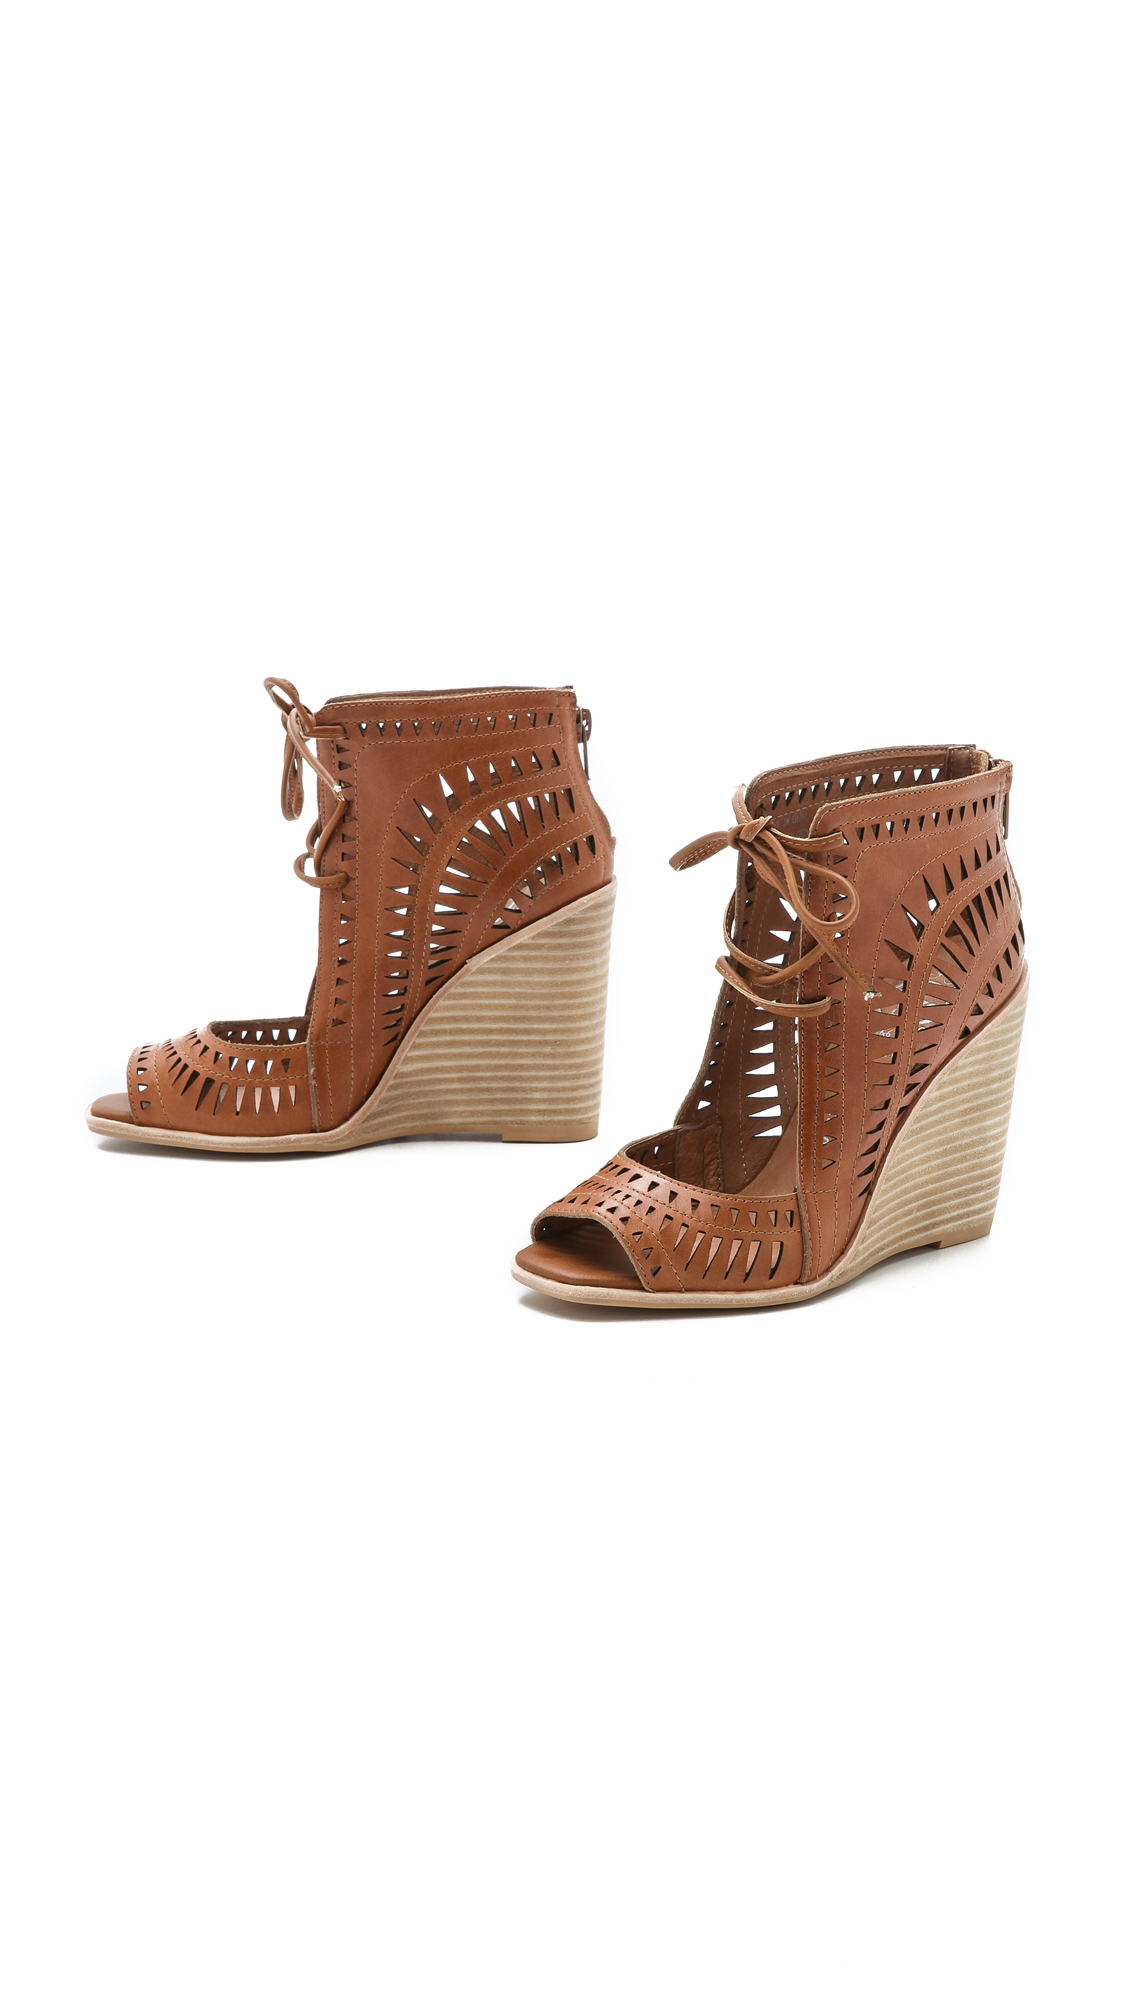 Jeffrey Campbell Rodillo Wedges Tan In Brown Lyst